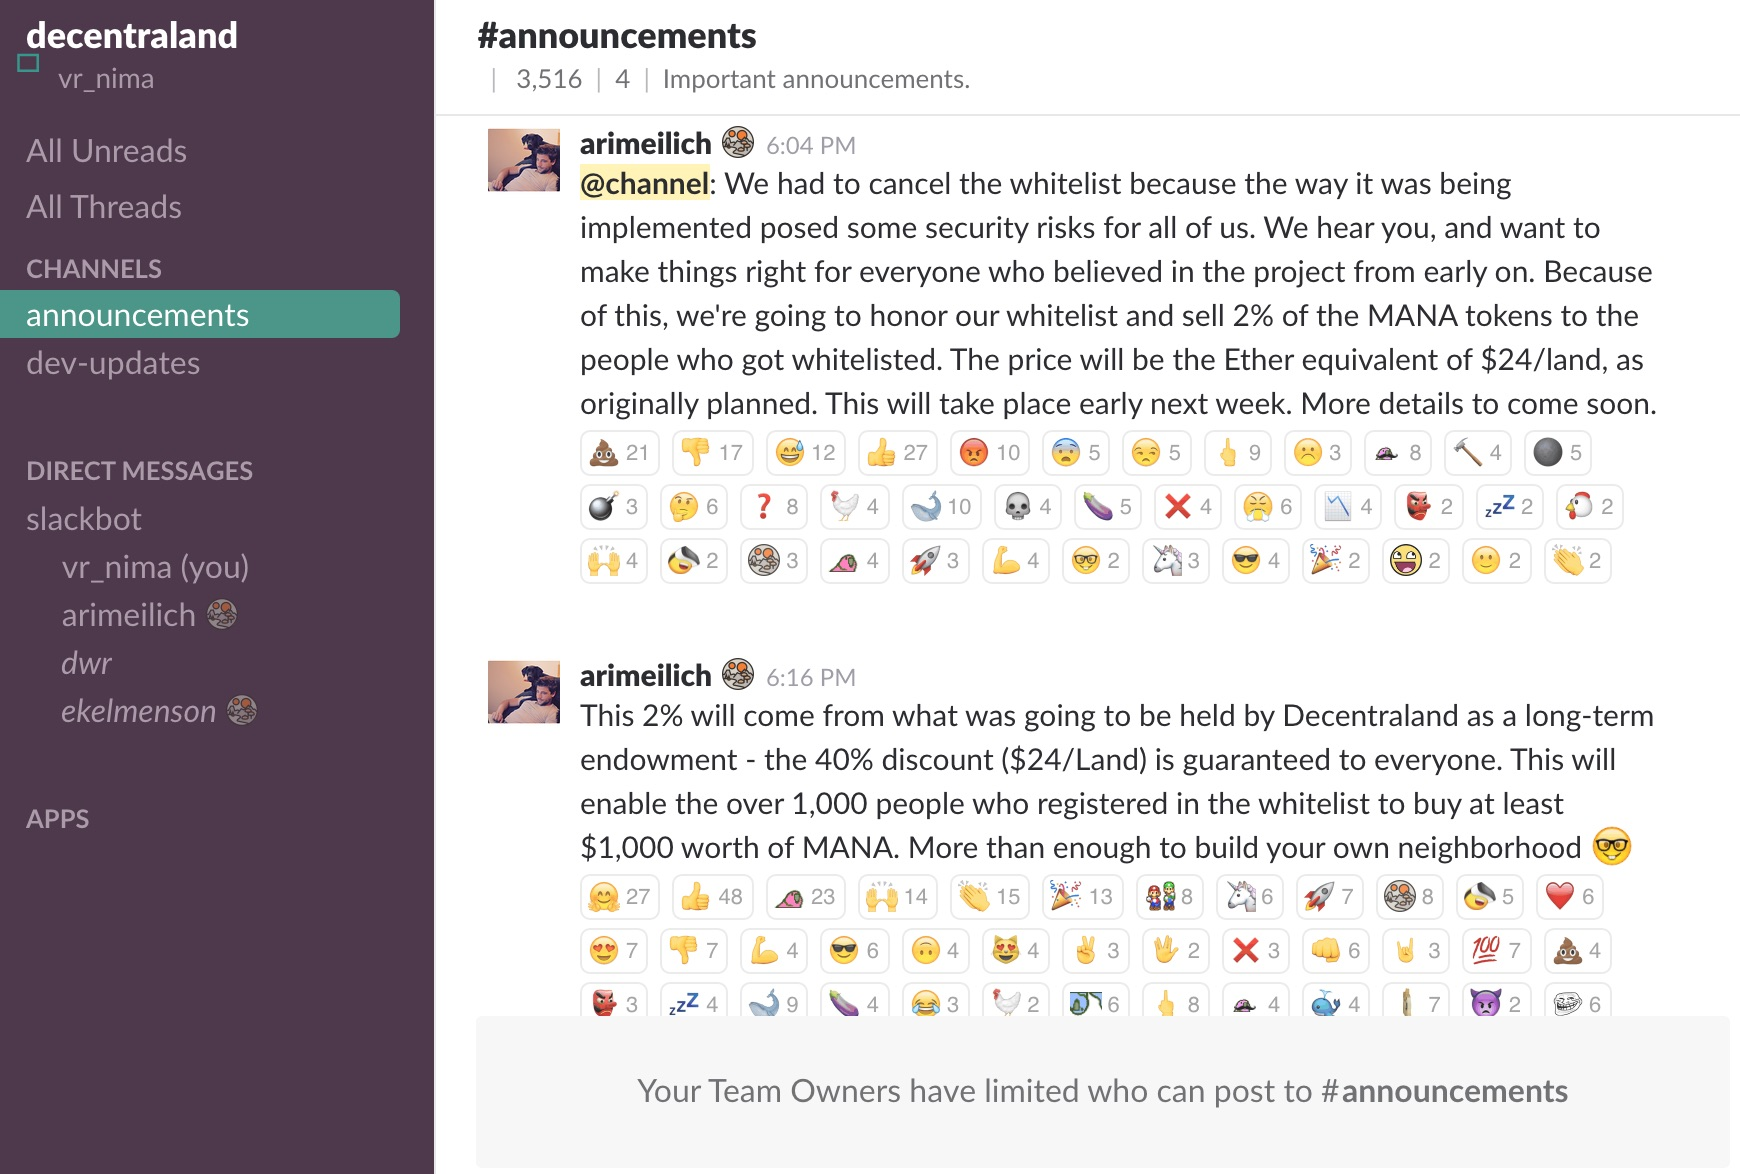 What the Slack channel looks like now